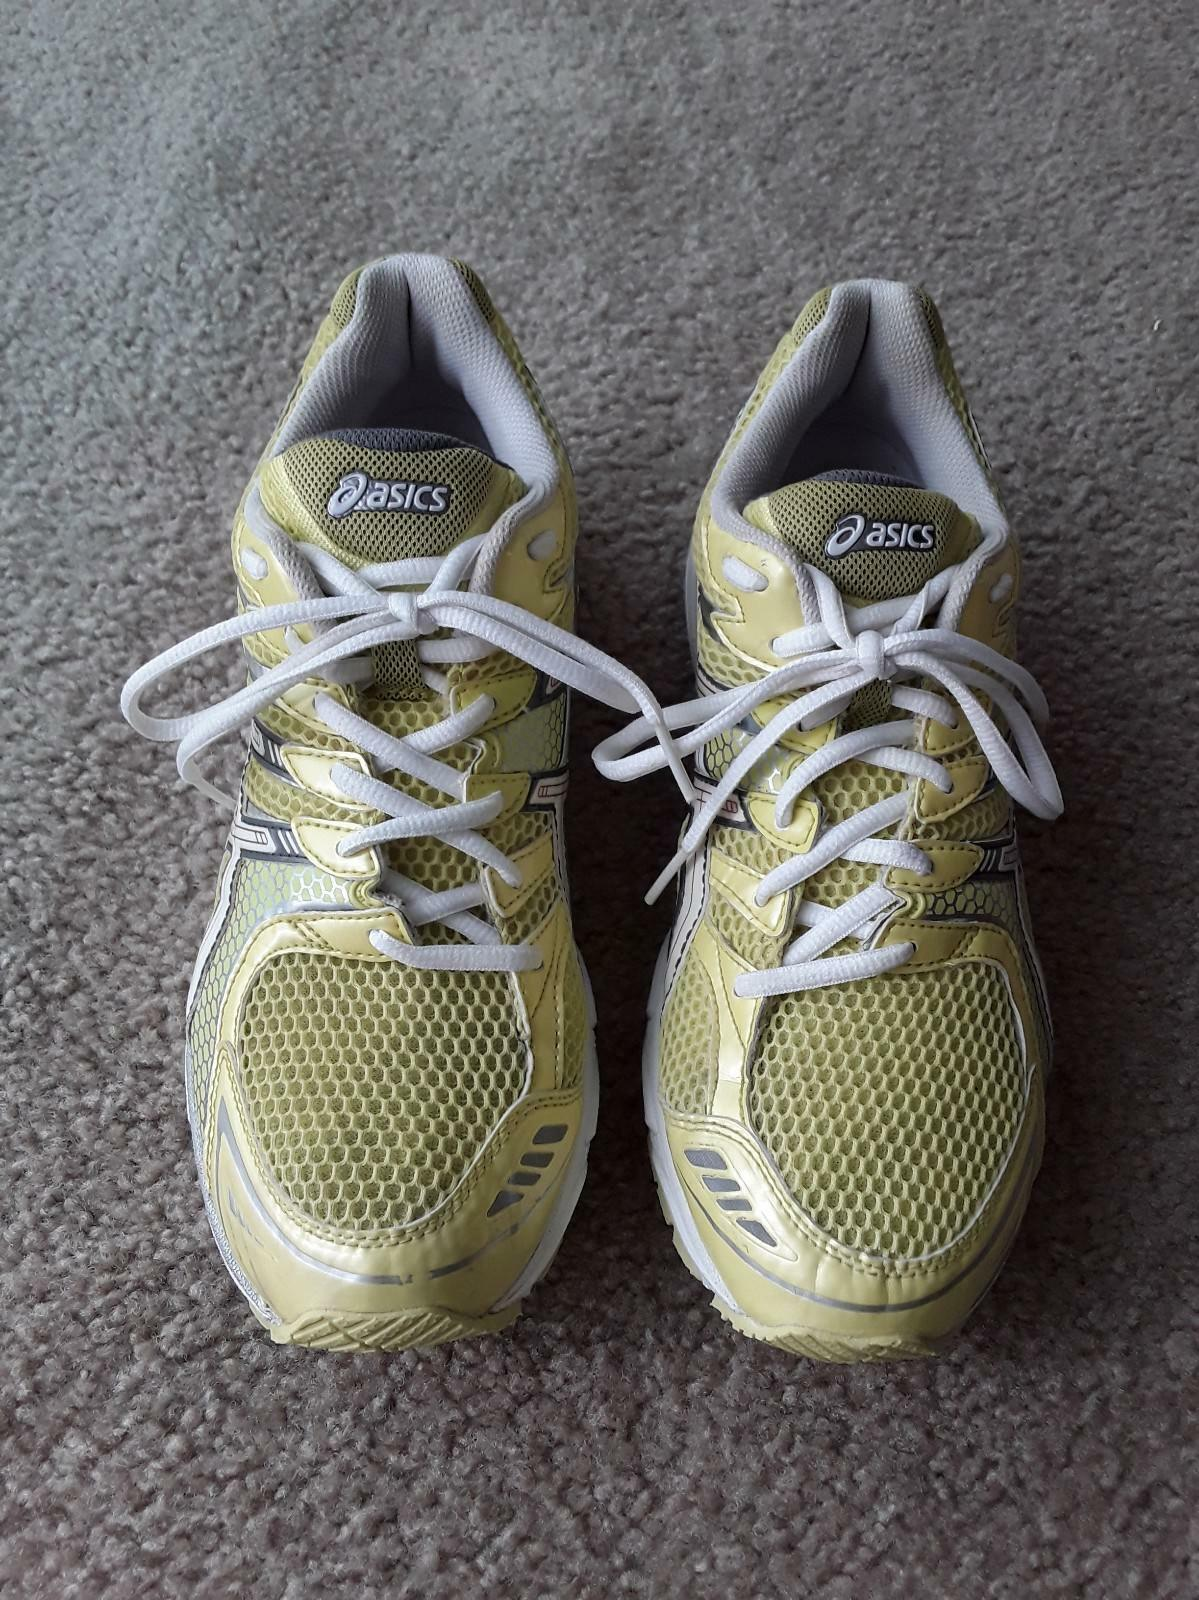 ASICS Gel OS SKY SPEED T0H6N Women's Running Cross Training shoes Sz.9.5 Yellow